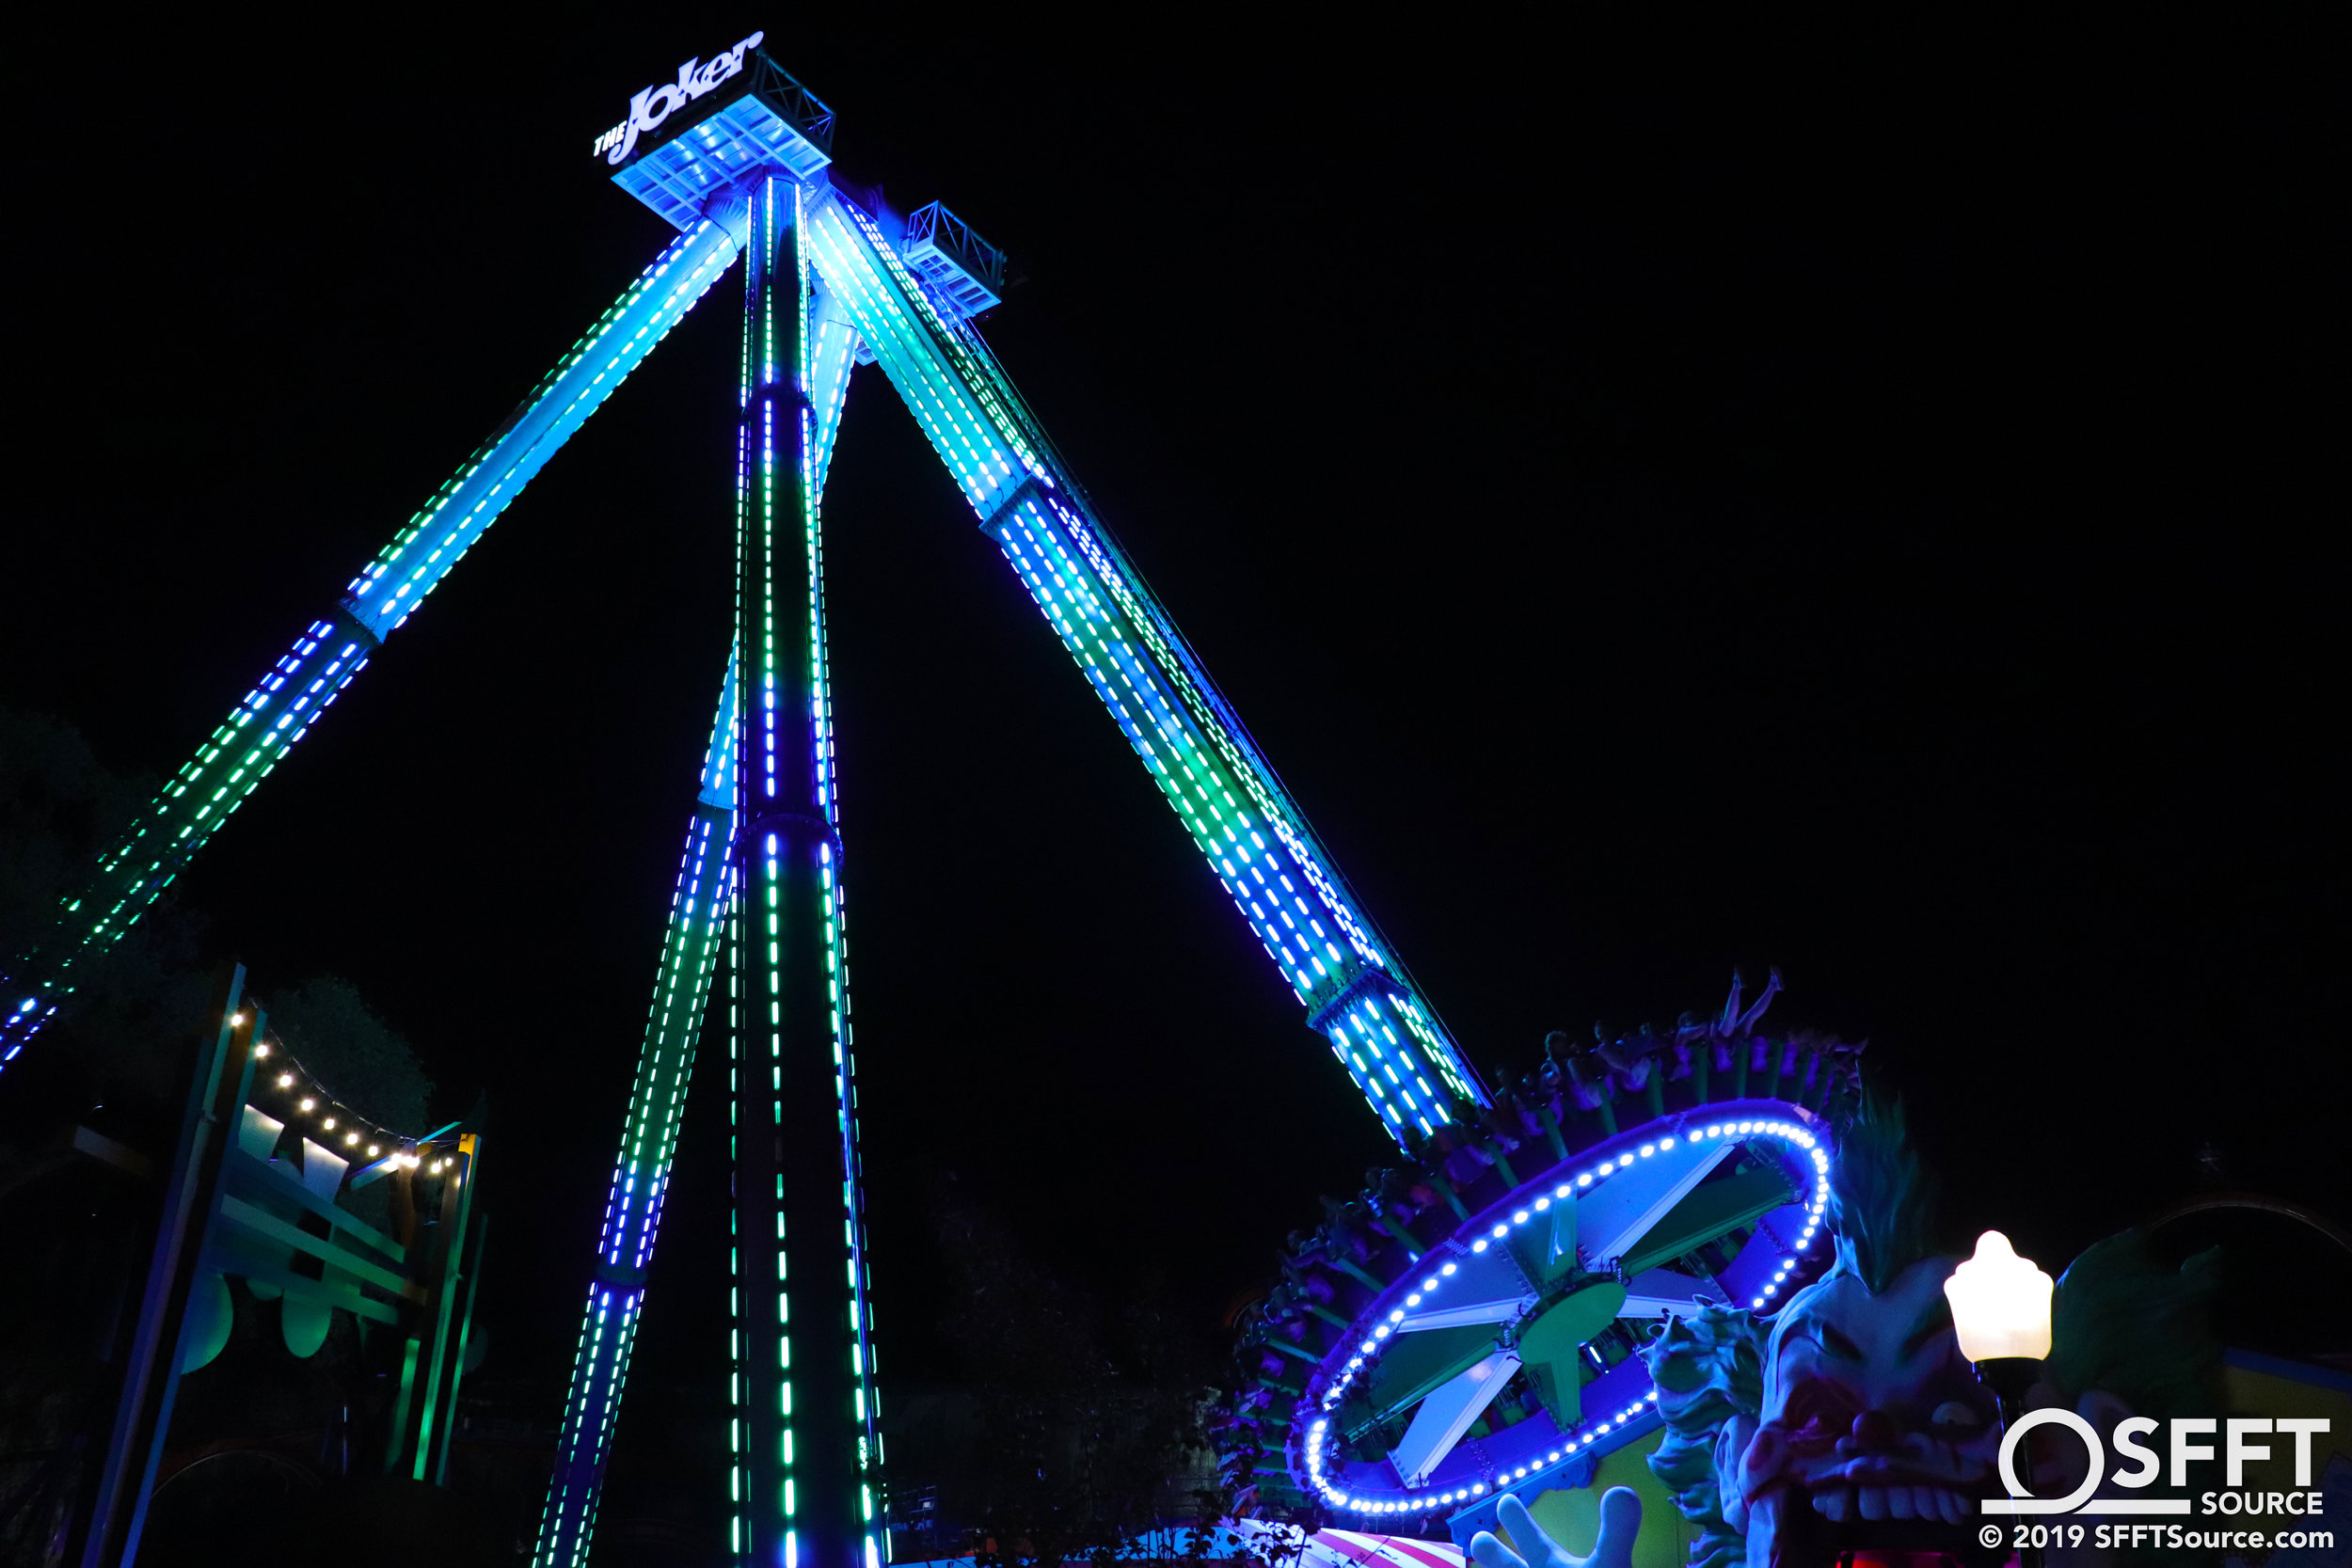 The Joker Carnival of Chaos features an impressive nighttime LED lighting package.